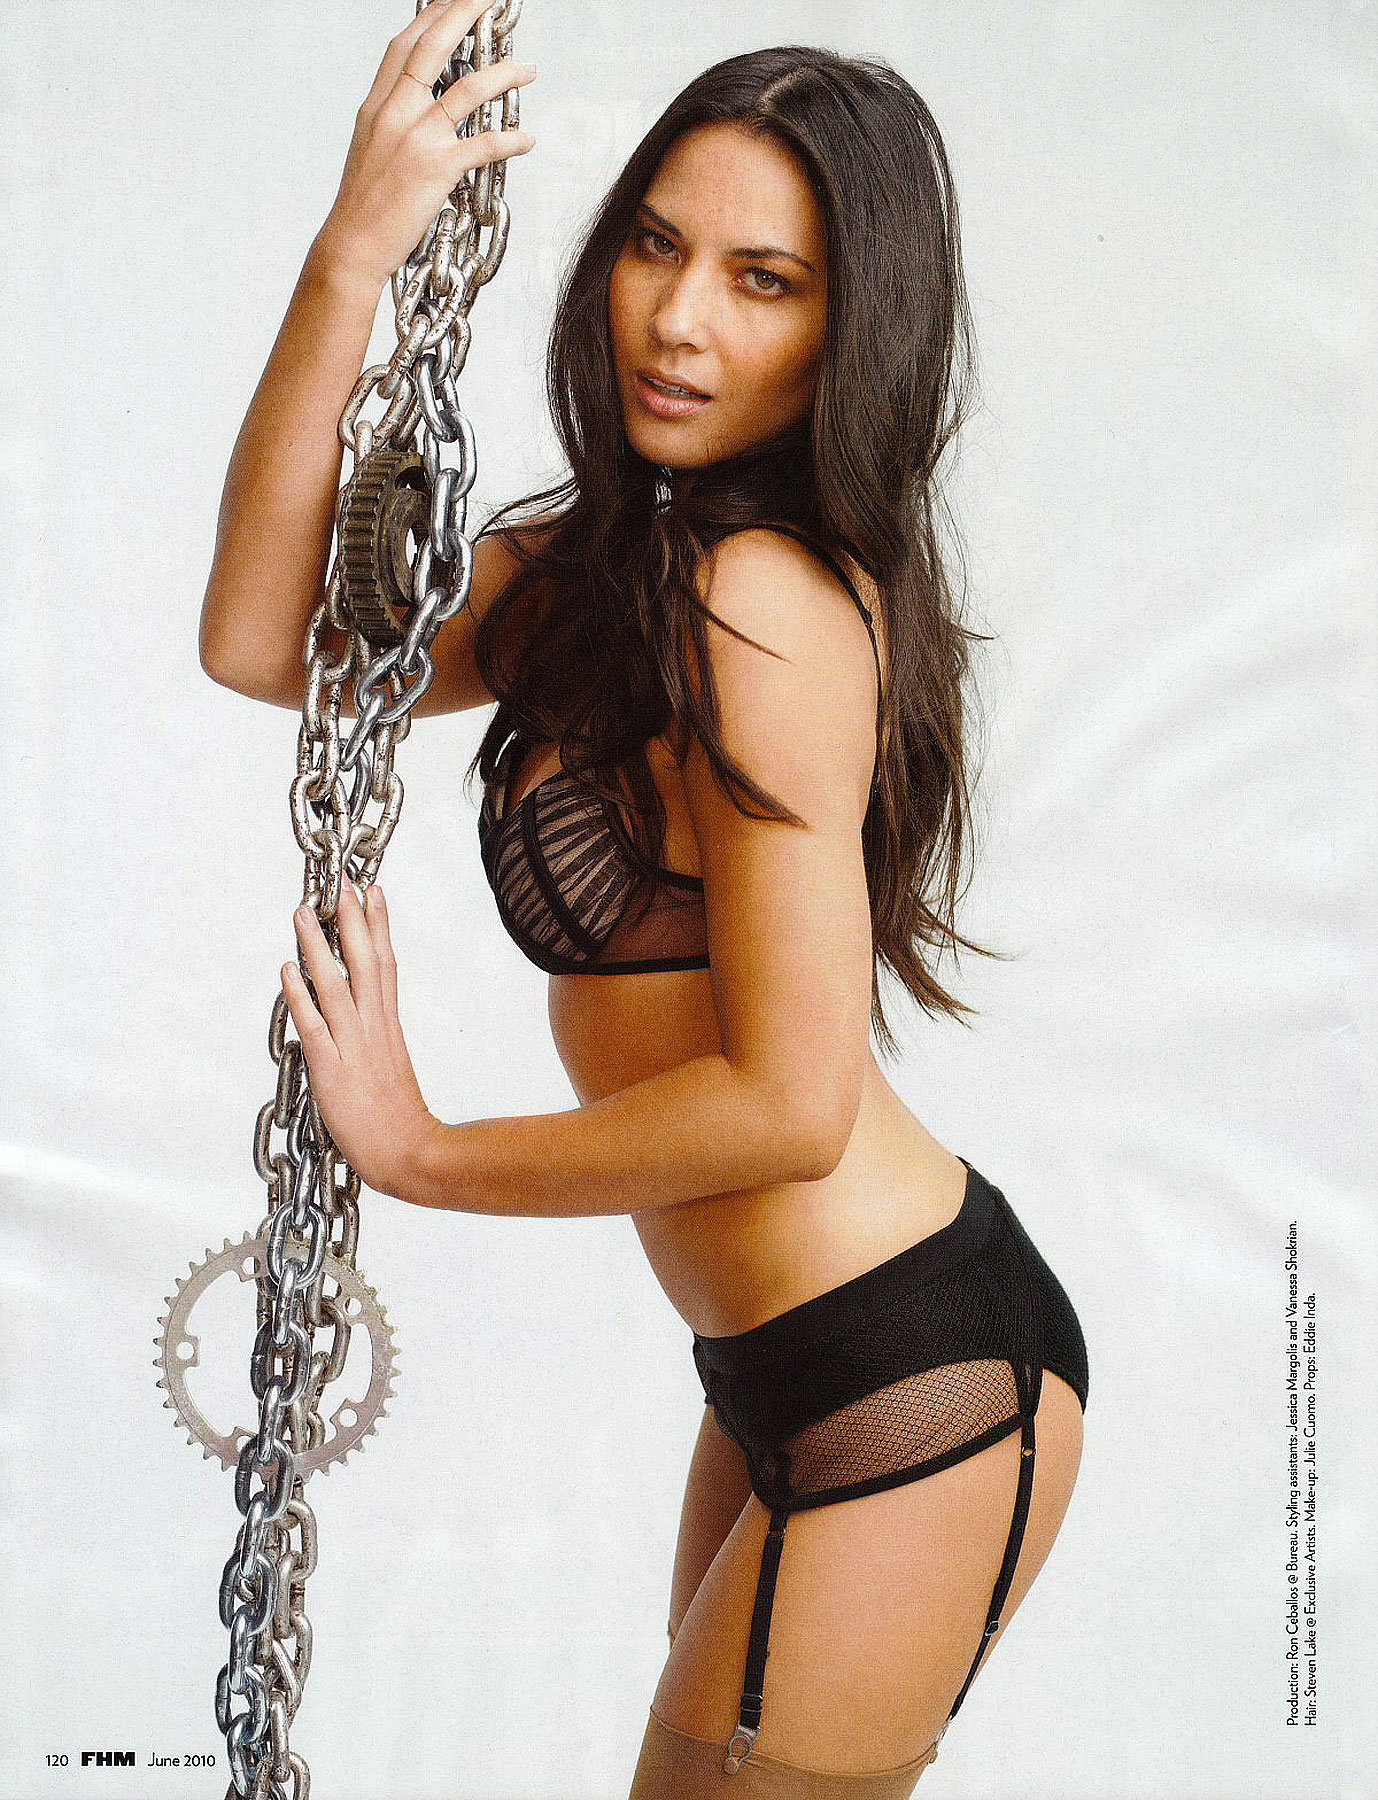 Olivia Munn Wraps Us In Chains Of Love For Sexy 'FHM' Shoot (PHOTOS)